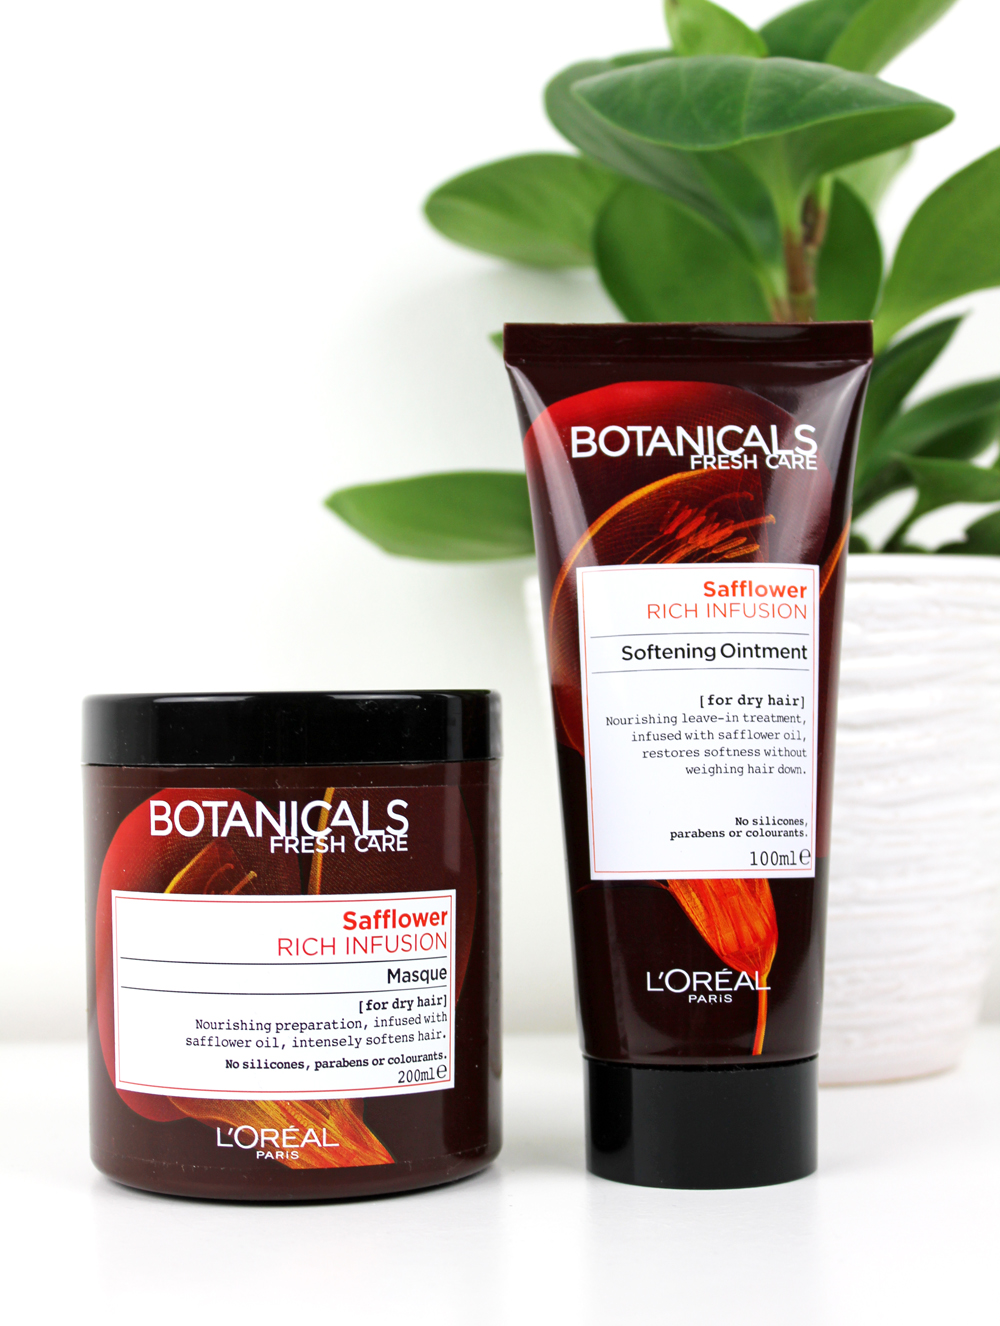 L´Oreal Botanicals Rich Infusion Masque and Softening Ointment